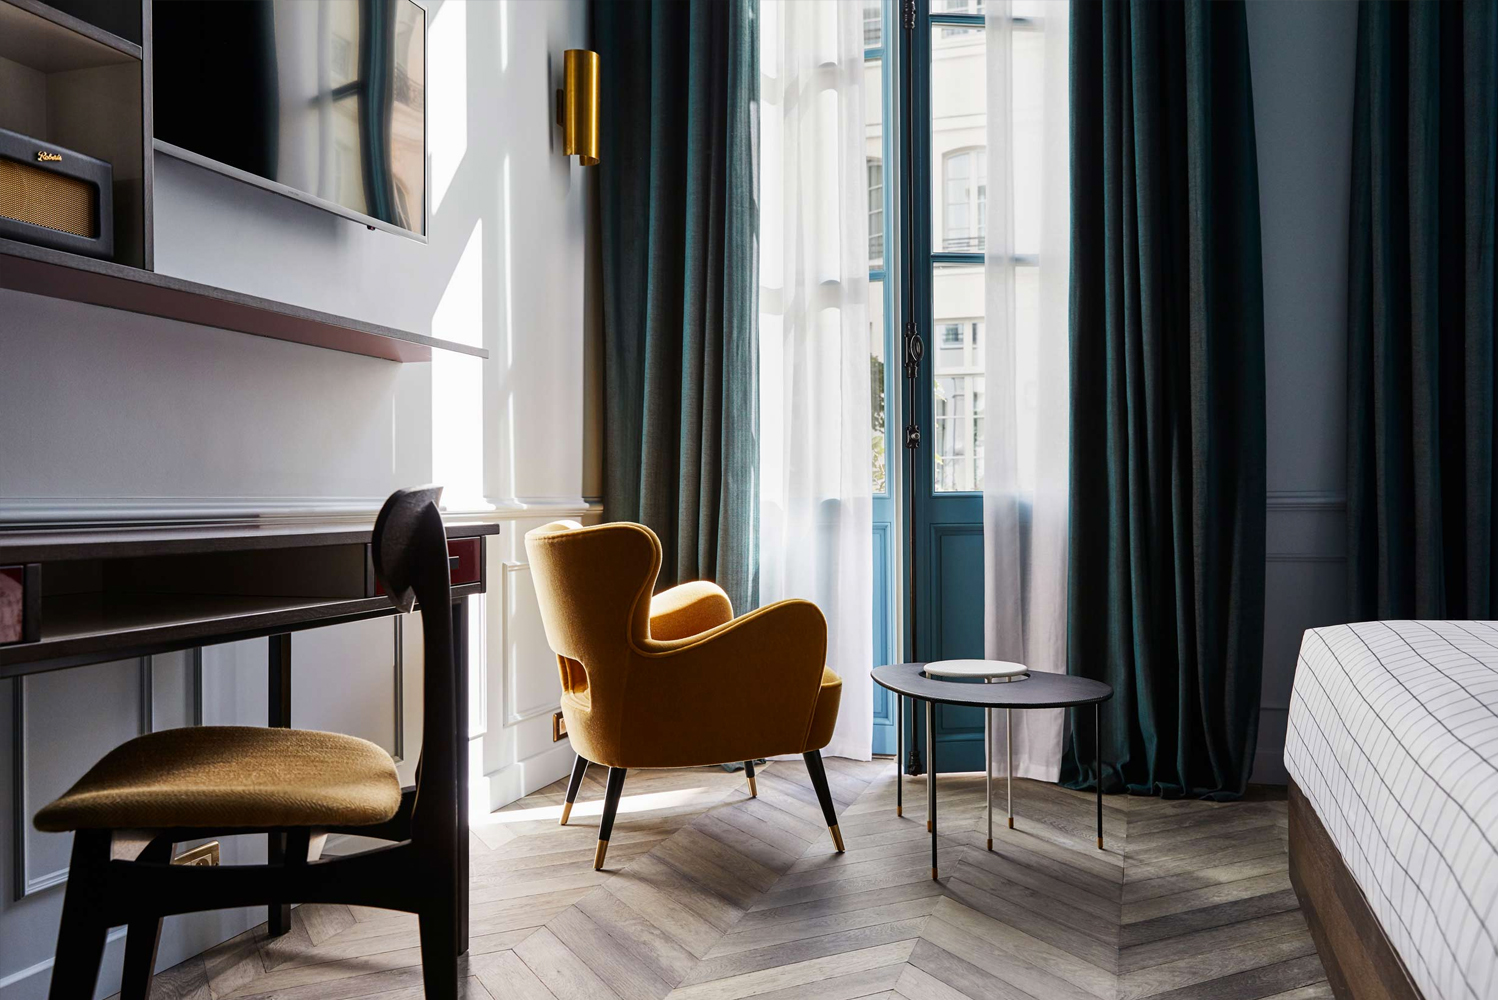 Throughout the hotel, the designers incorporated pieces that were created or inspired by some of the country's furniture and lighting designers.